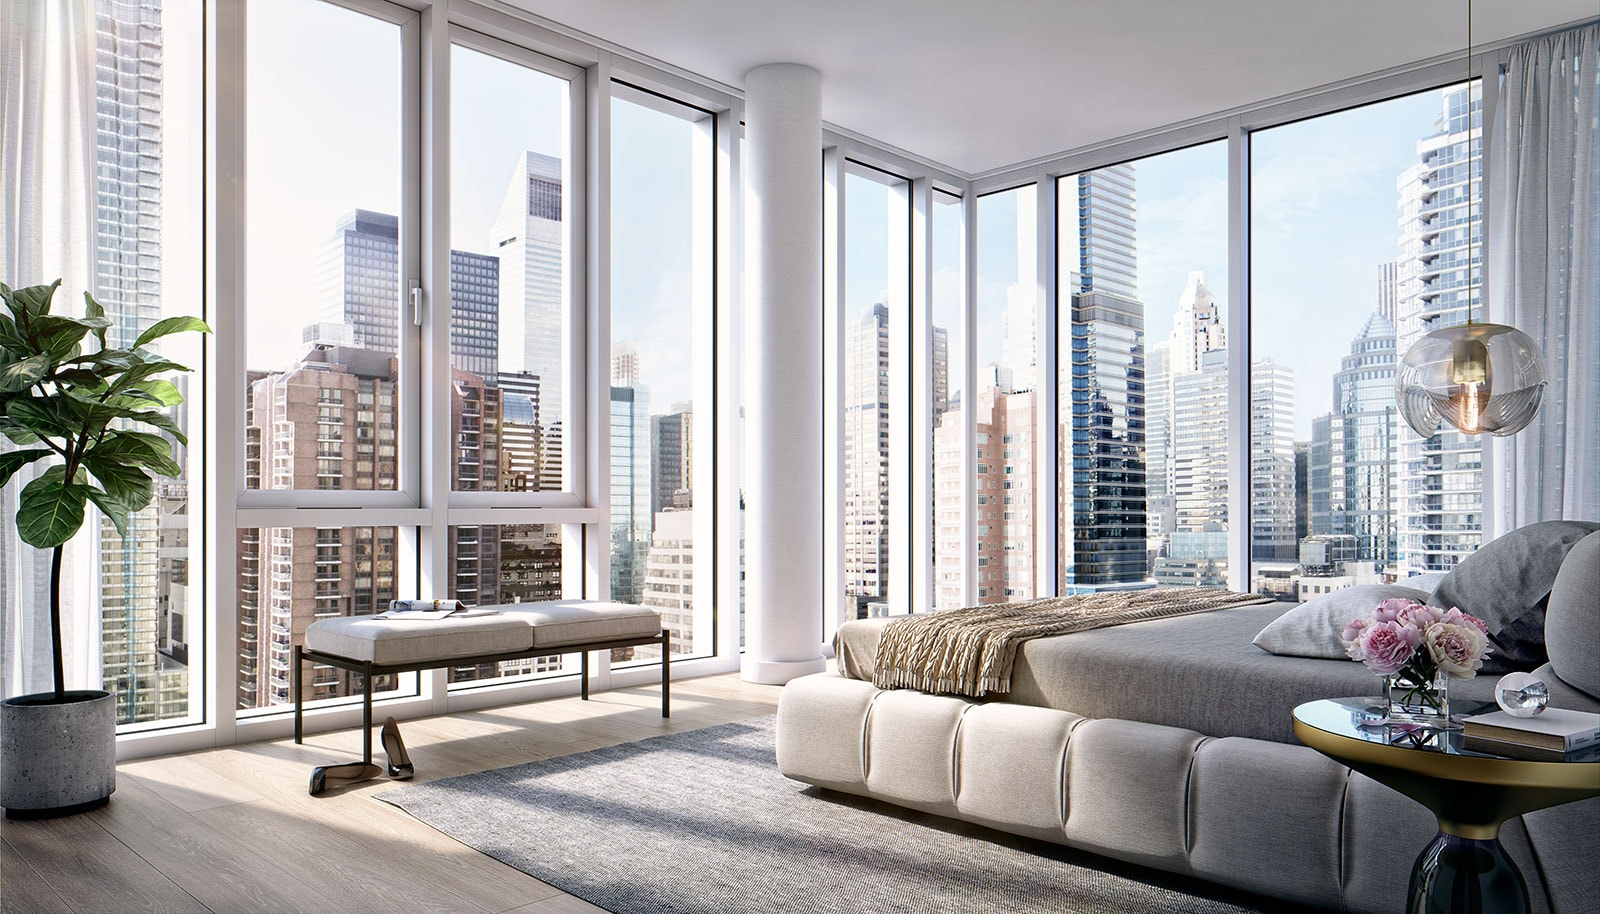 The Clare at 301 East 61st Street in Upper East Side - Luxury